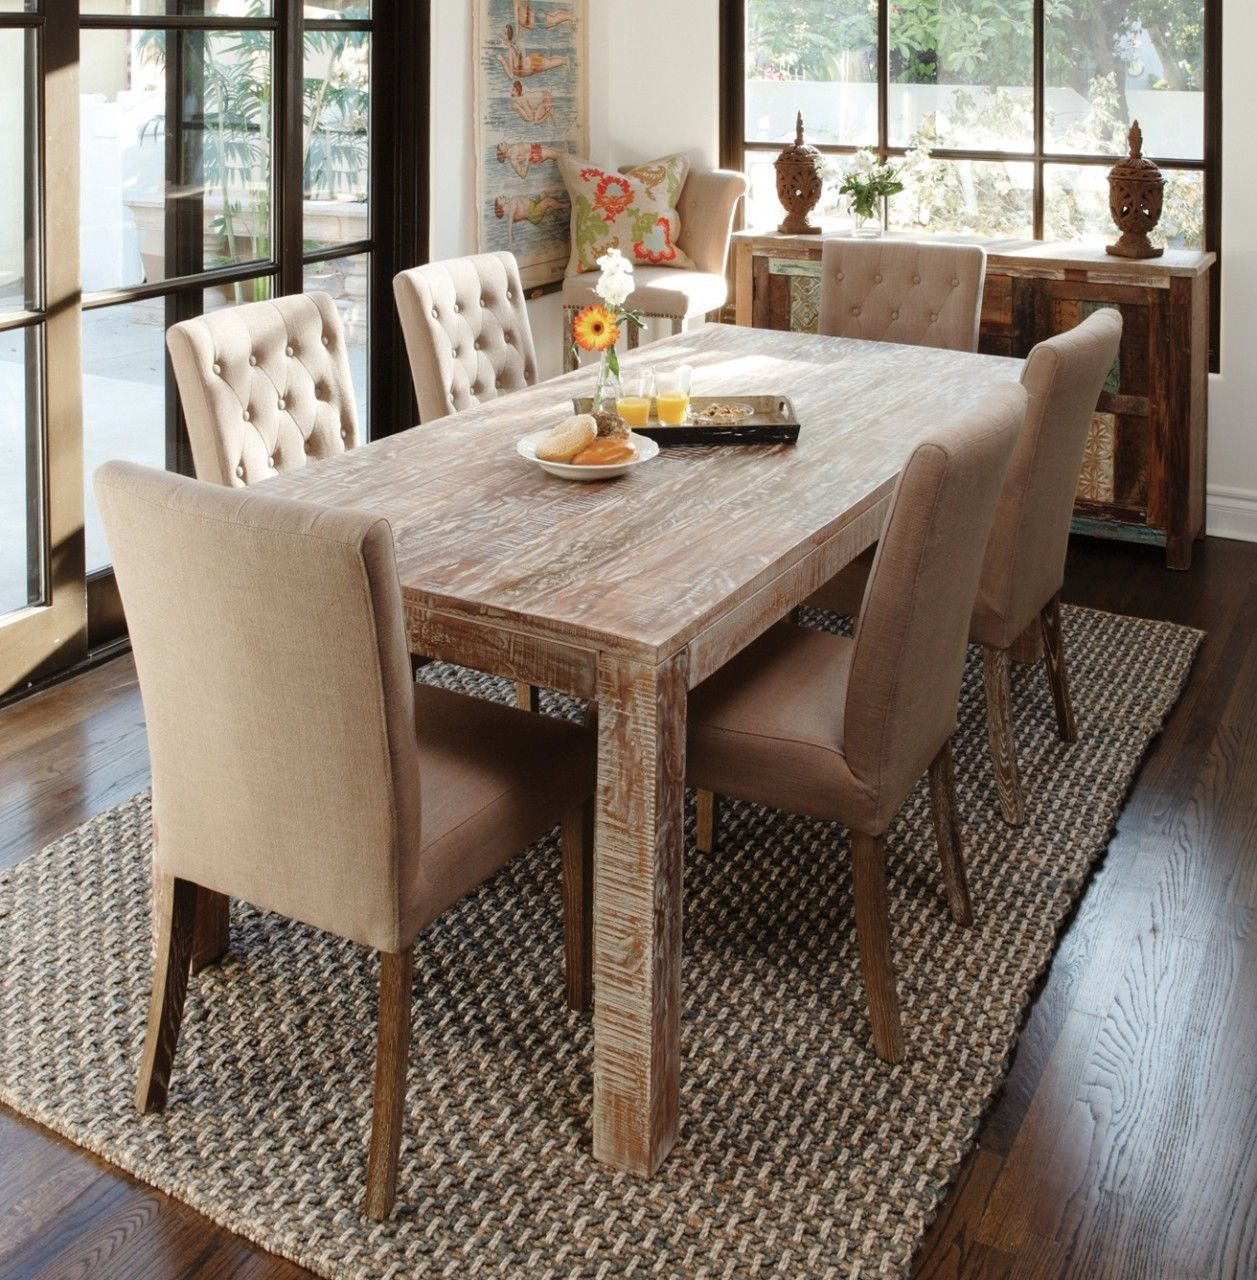 Wood Dining Room Tables ~ Congresos-Pontevedra.com